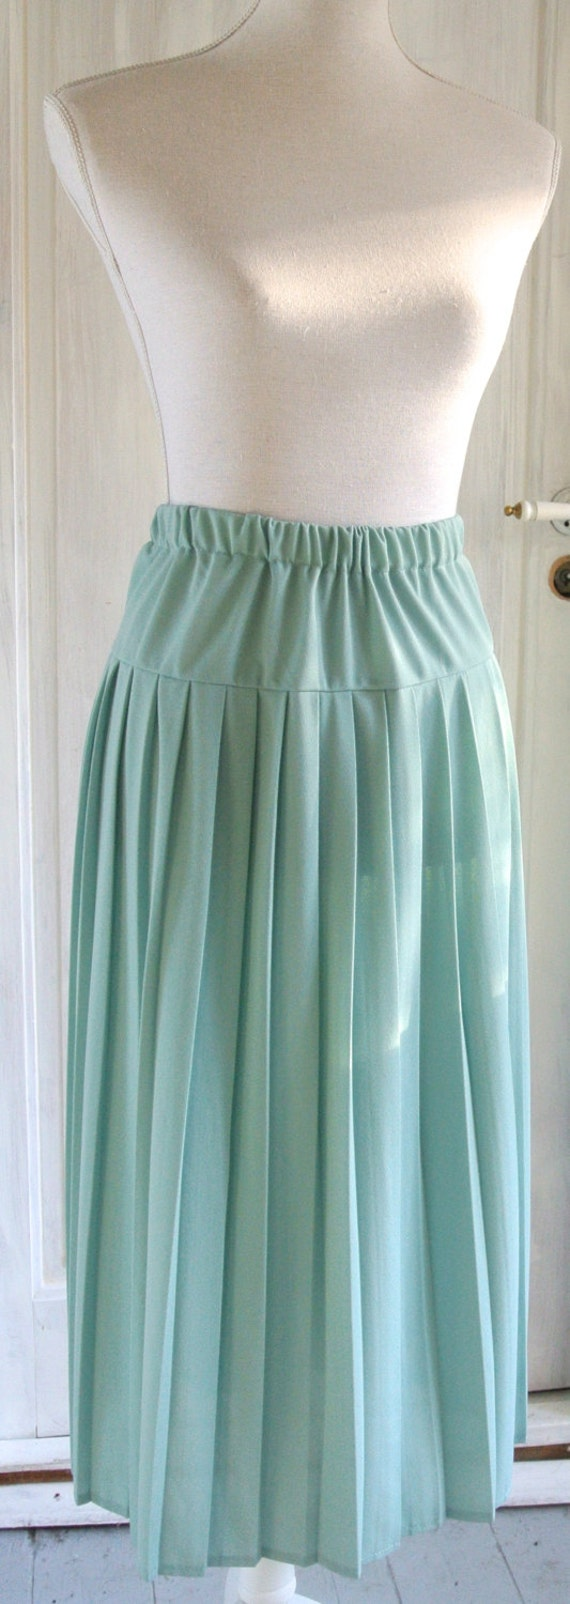 vintage 50 s 60 s pleated skirt mint by